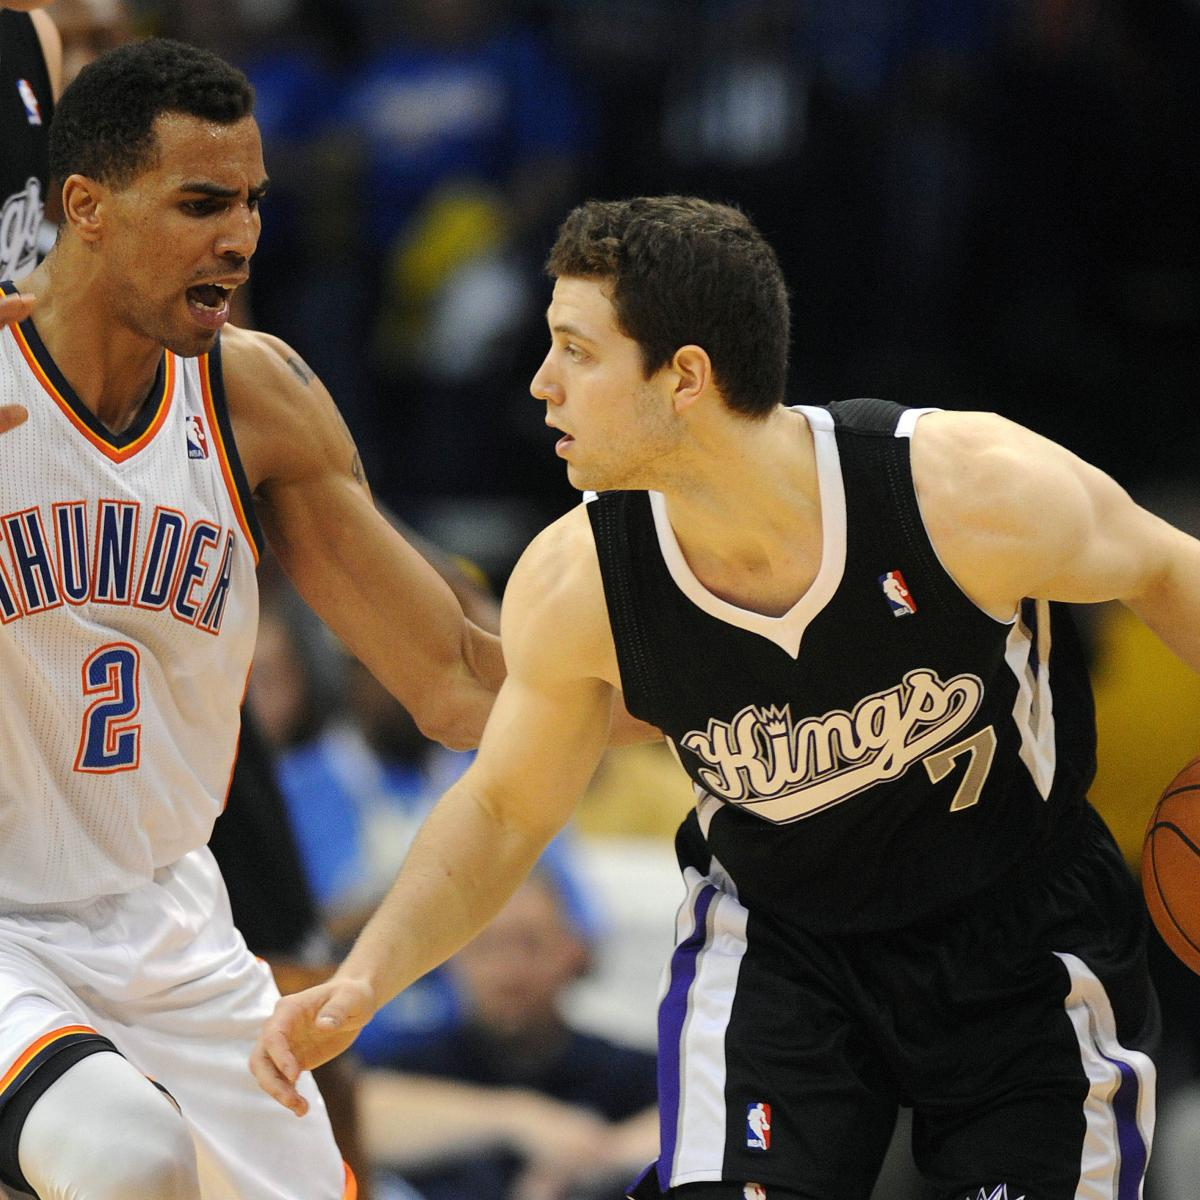 Mlb Rumors Analyzing All The Latest Whispers News And: NBA Trade Rumors: Latest Buzz On Jimmer Fredette, Kris